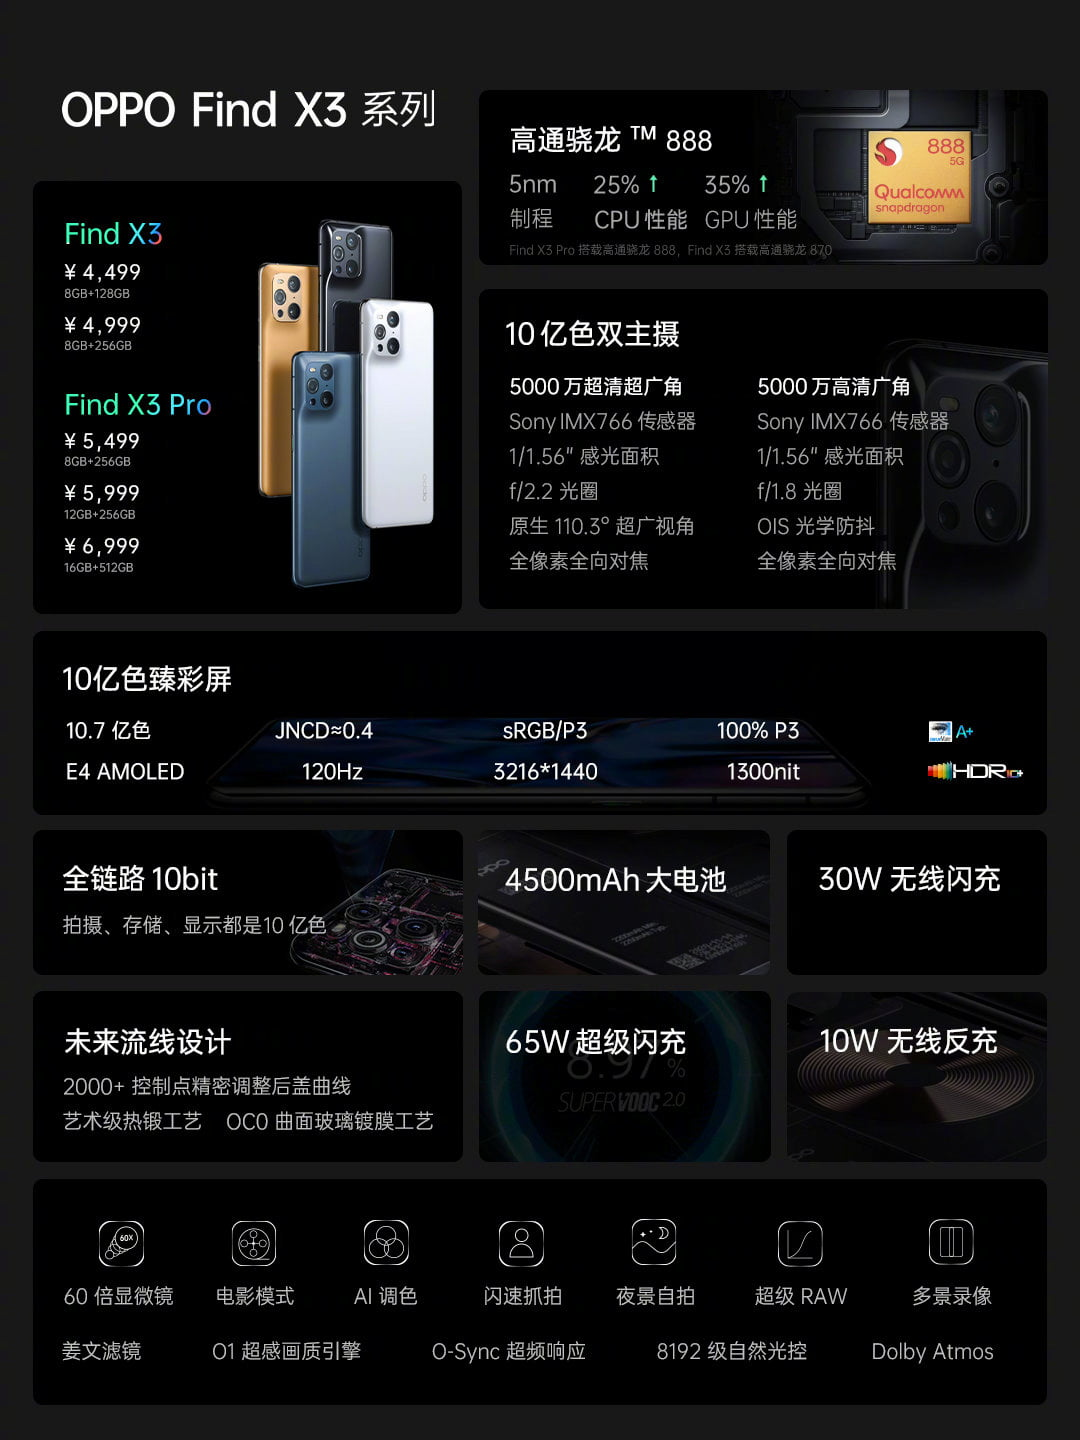 OPPO Find X3 系列主要卖点